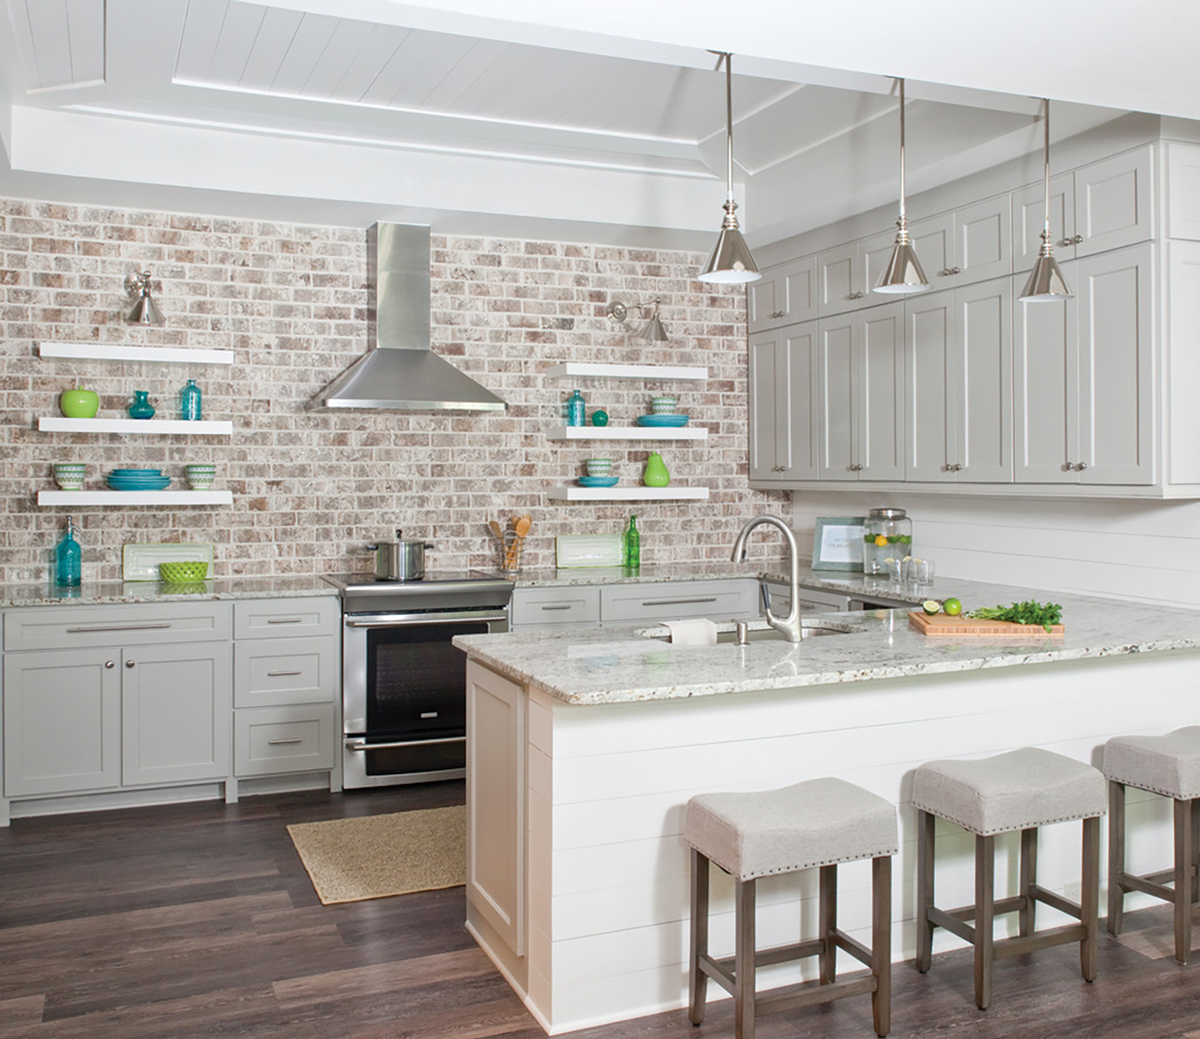 Open Shelving In The Kitchen: Kitchen Cabinets? Or Open Shelving? We Asked An Expert For